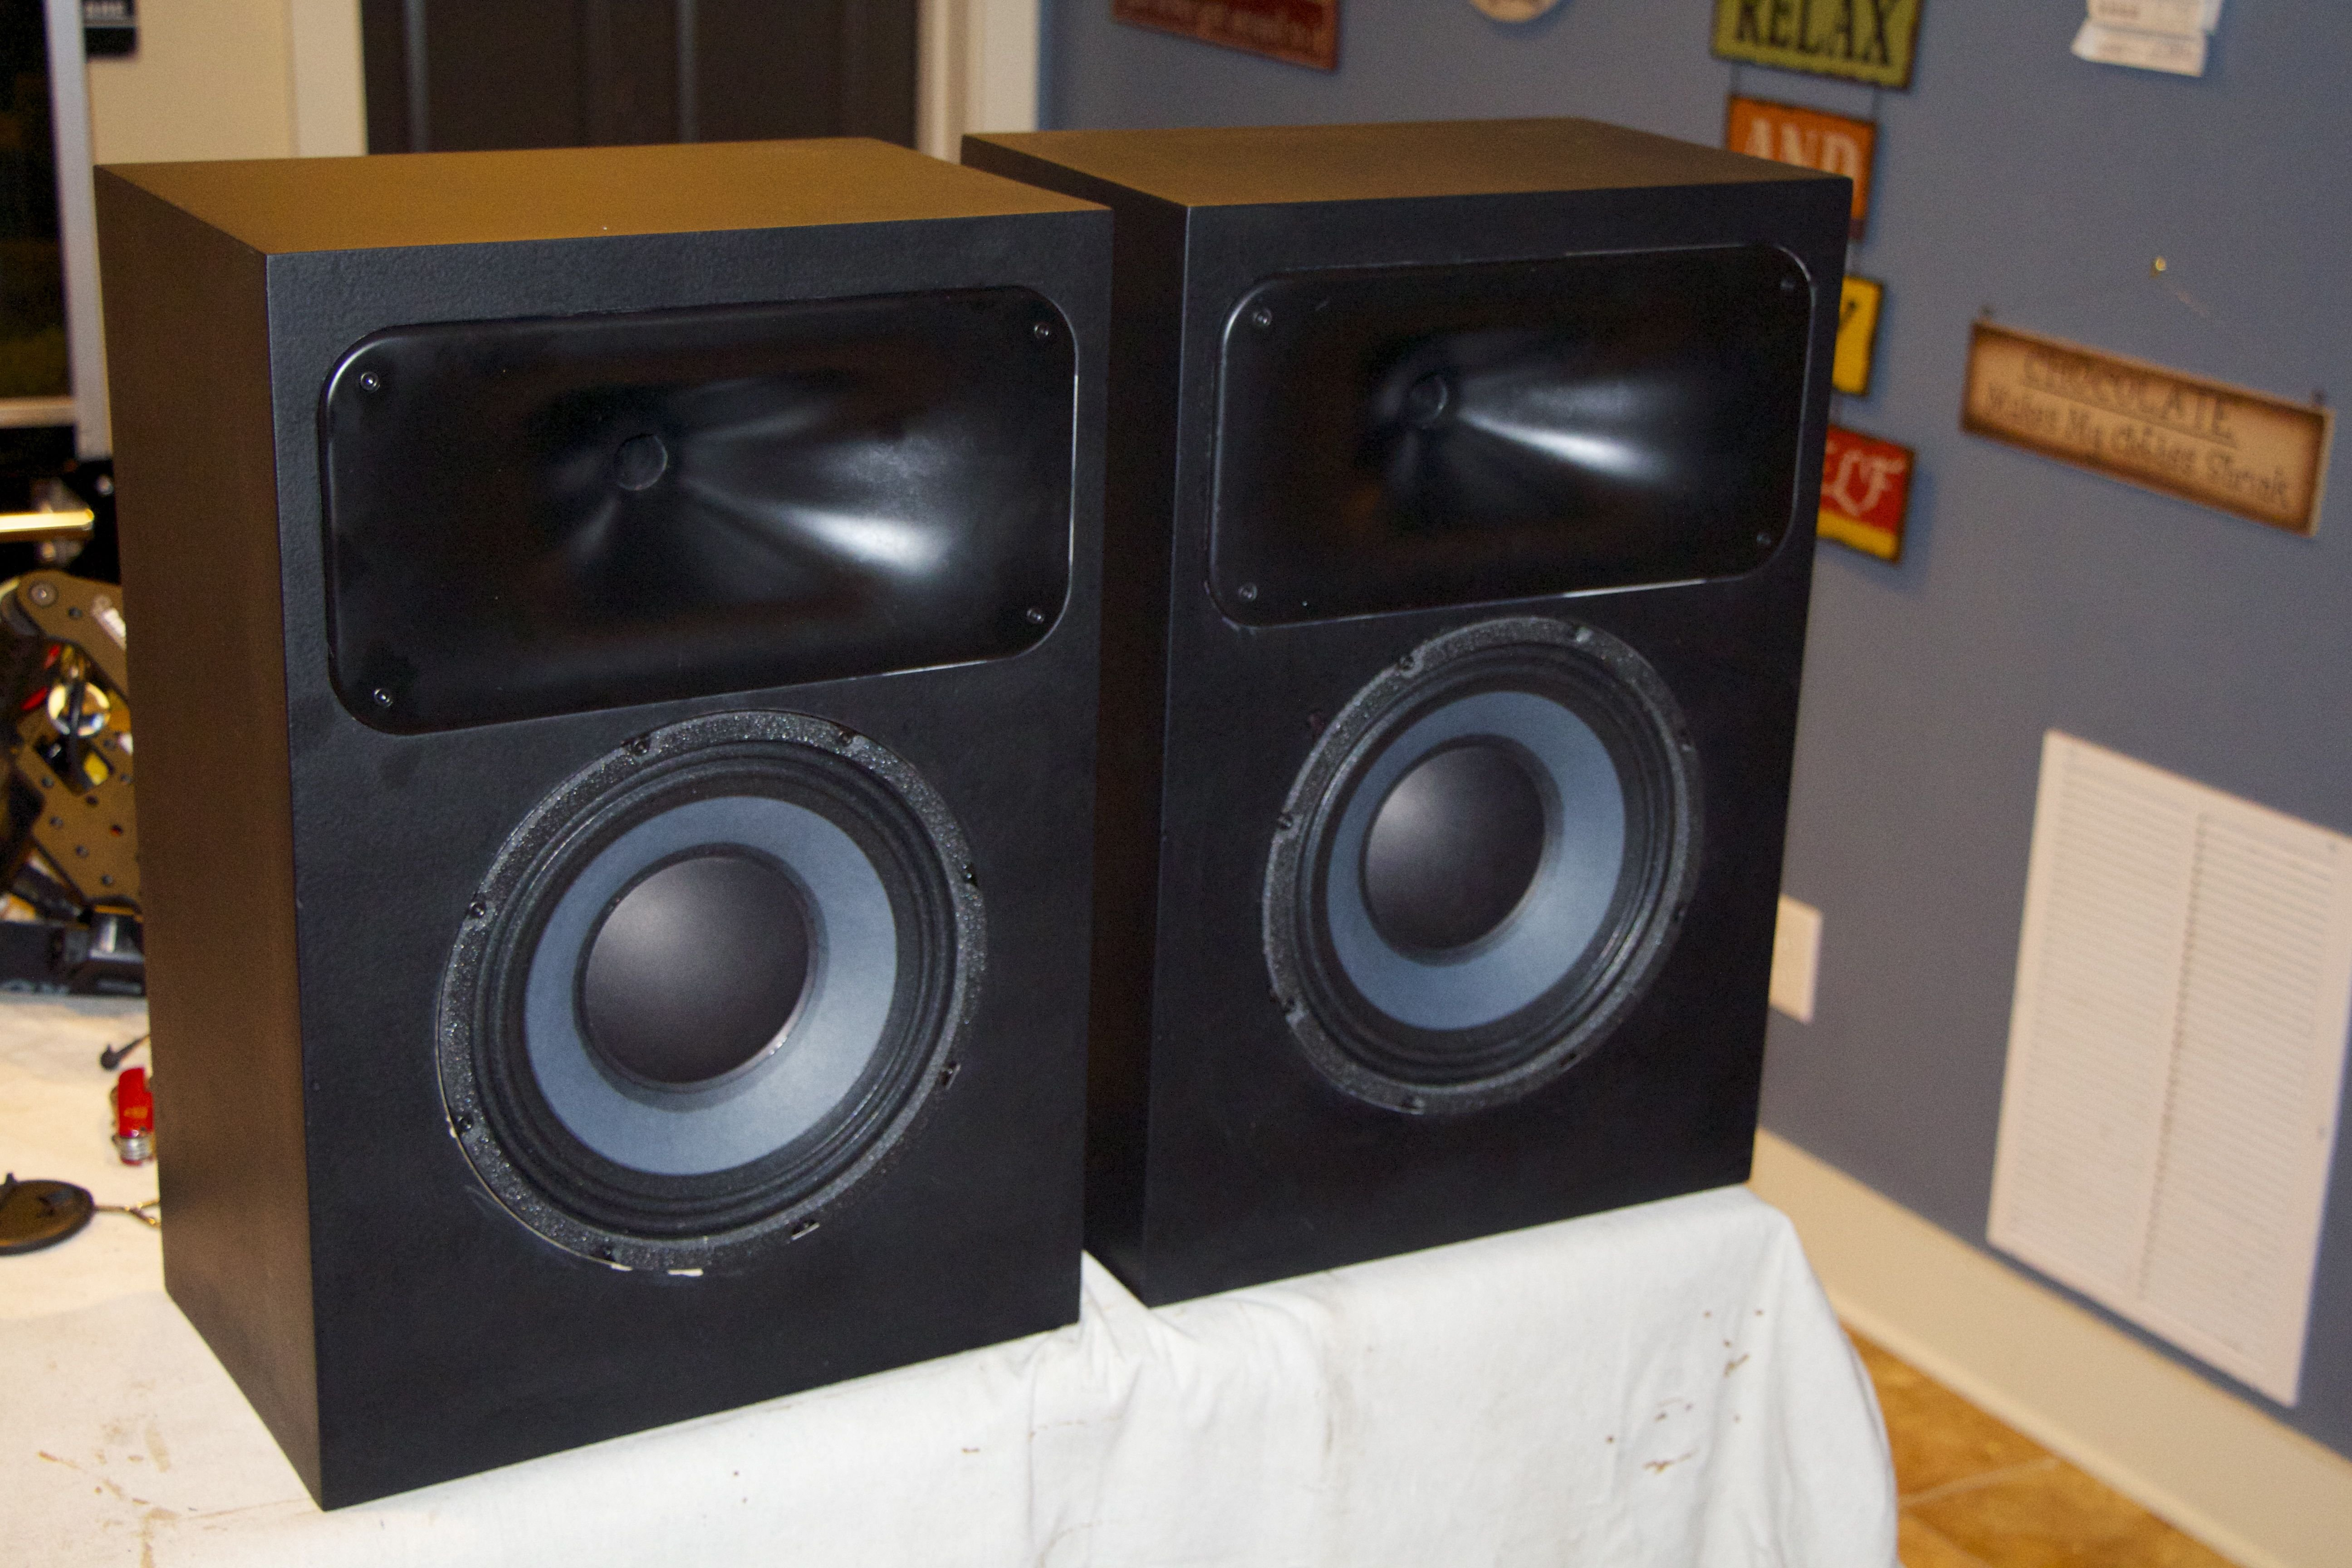 Java's sealed Fusion Max speakers